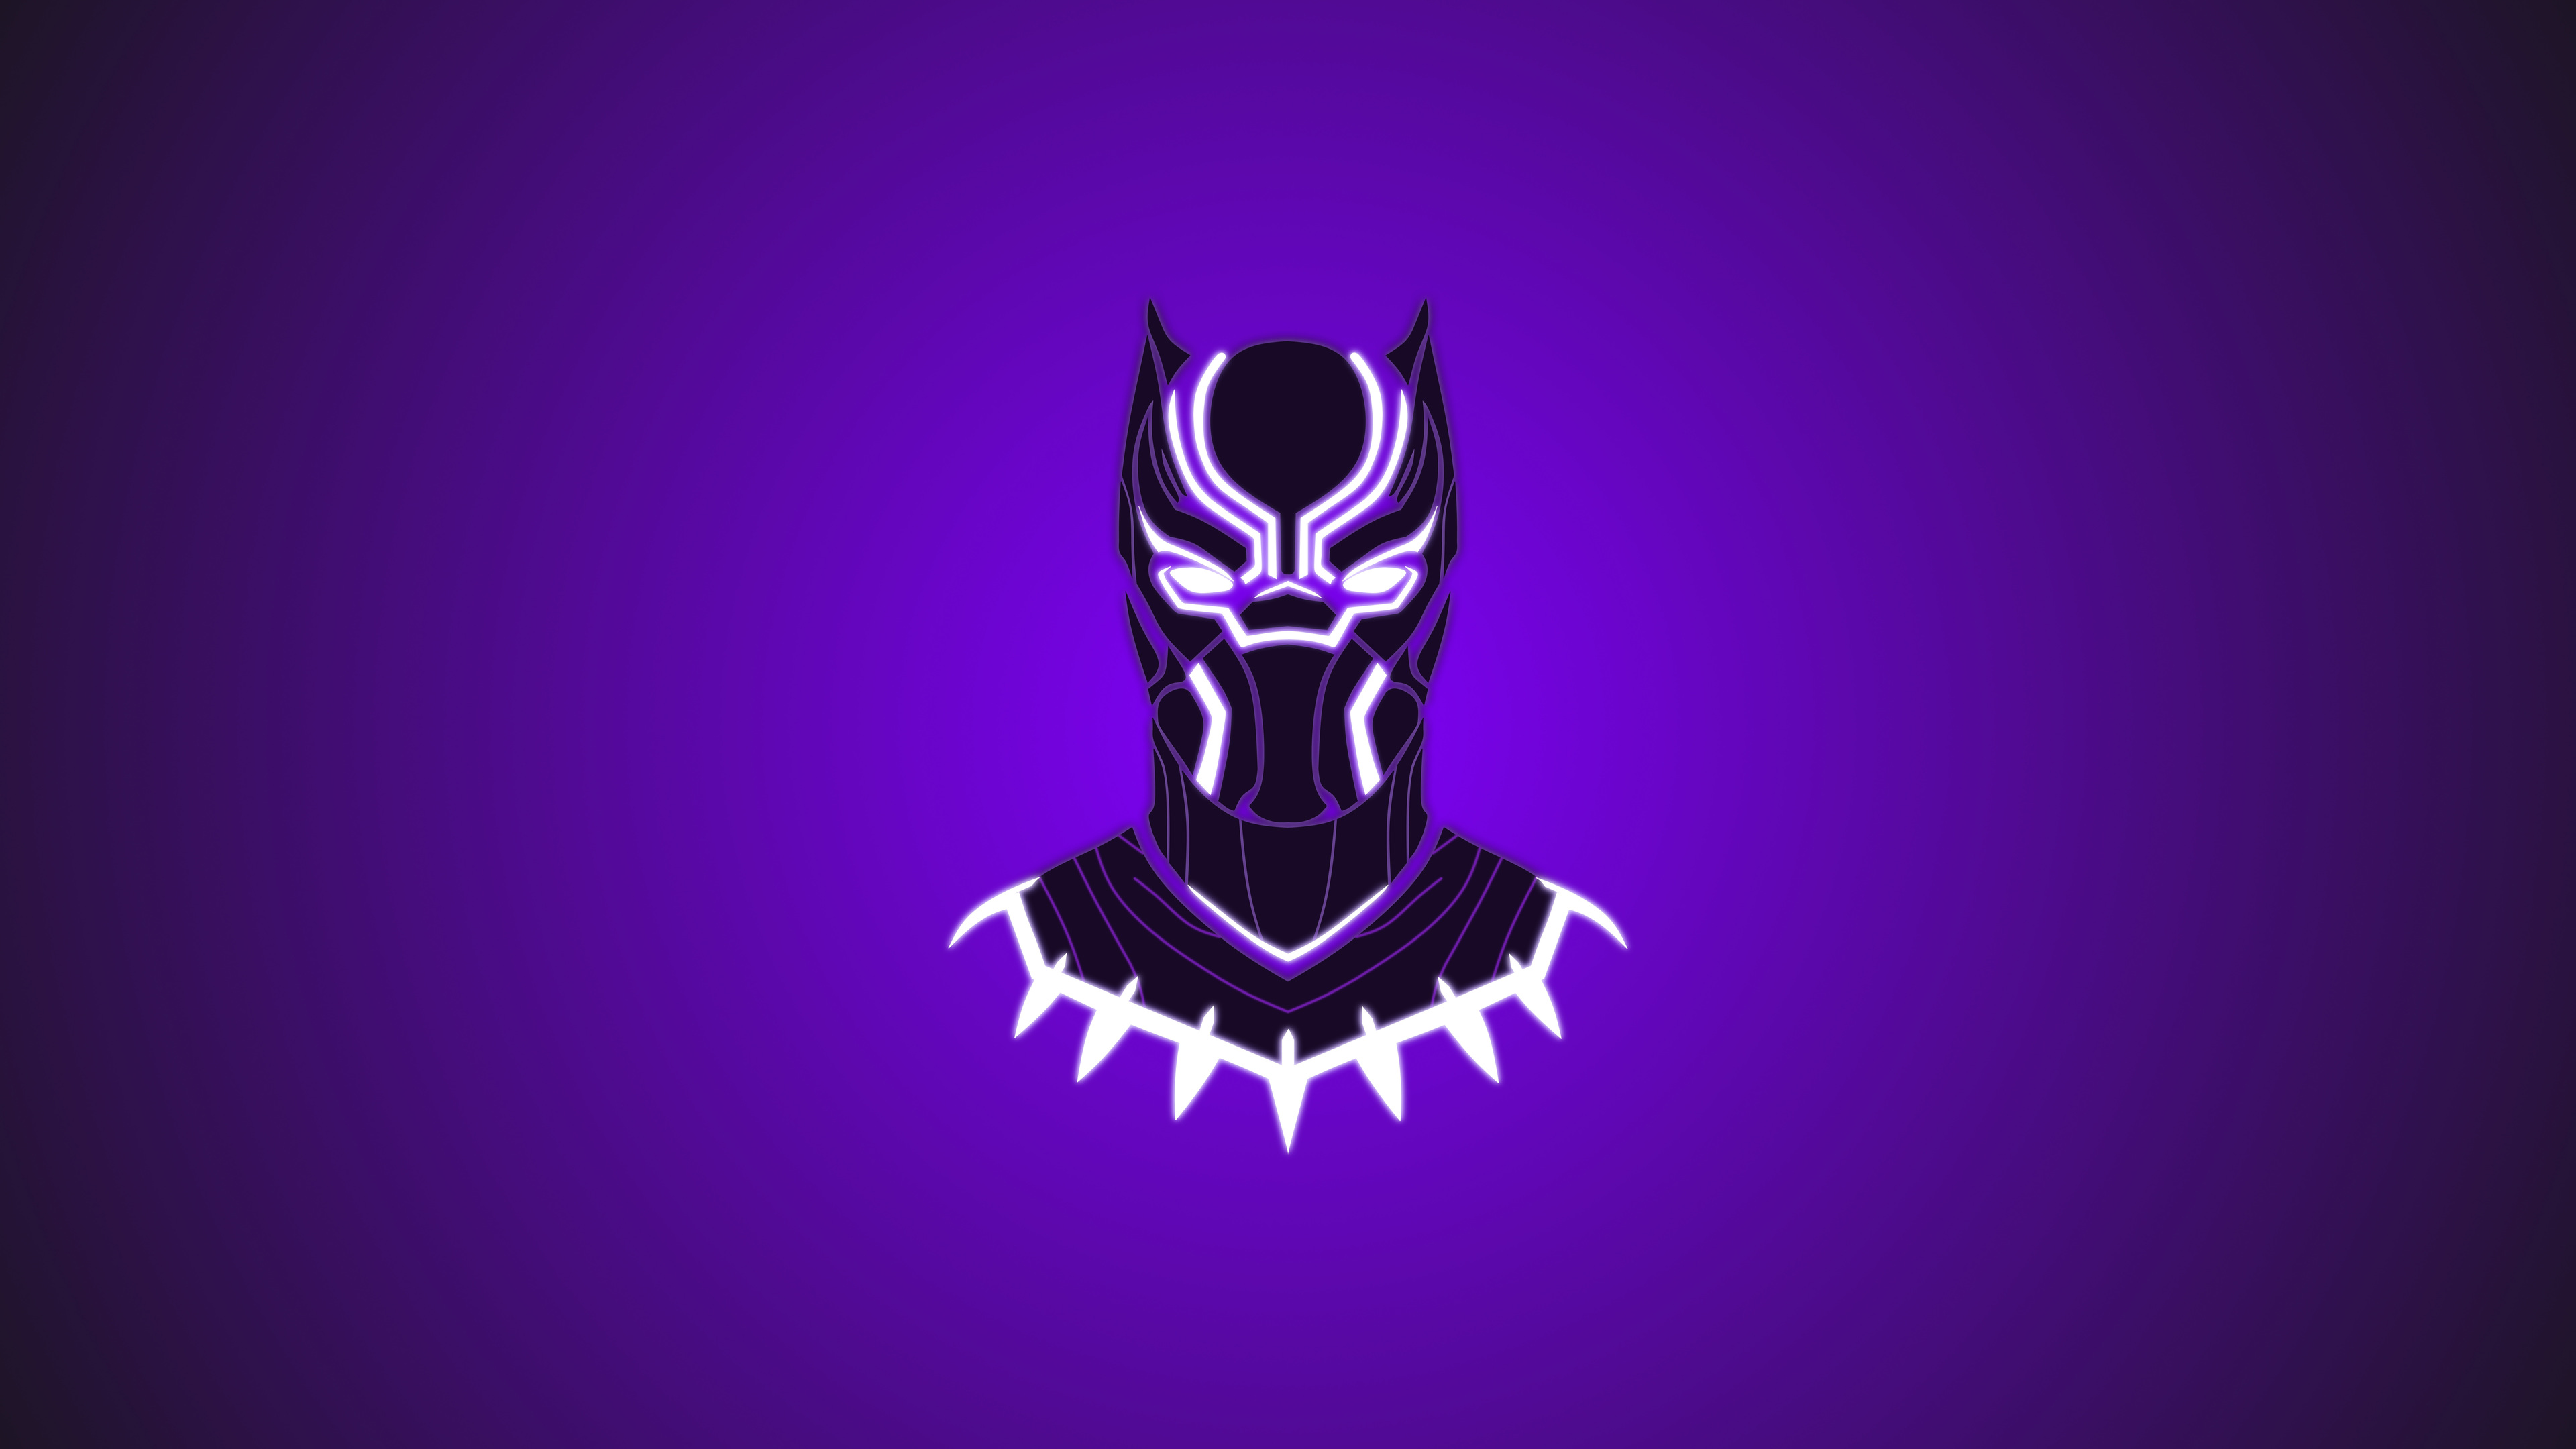 Wallpaper 4k Black Panther 10k Art 10k Wallpapers 4k Wallpapers 5k